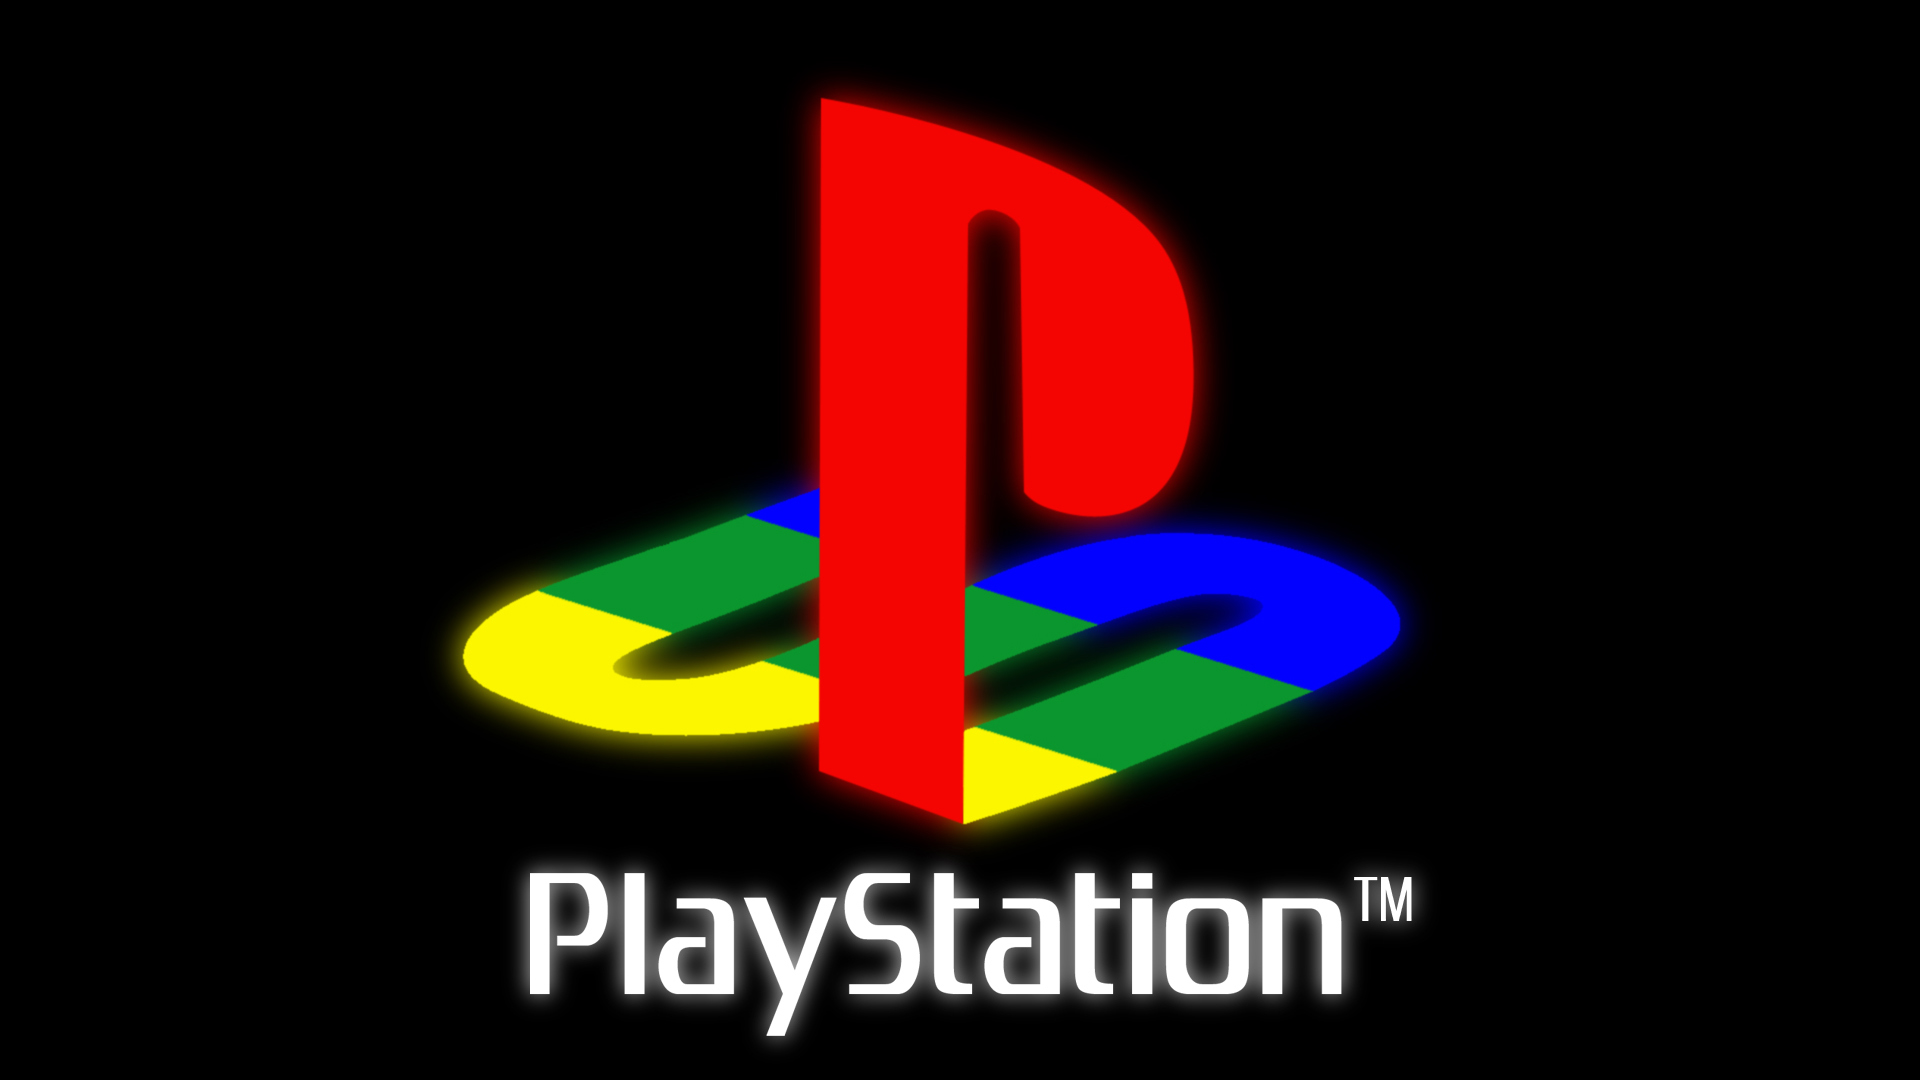 PlayStation Evolution videos continue to hint at PlayStation 4 announcement